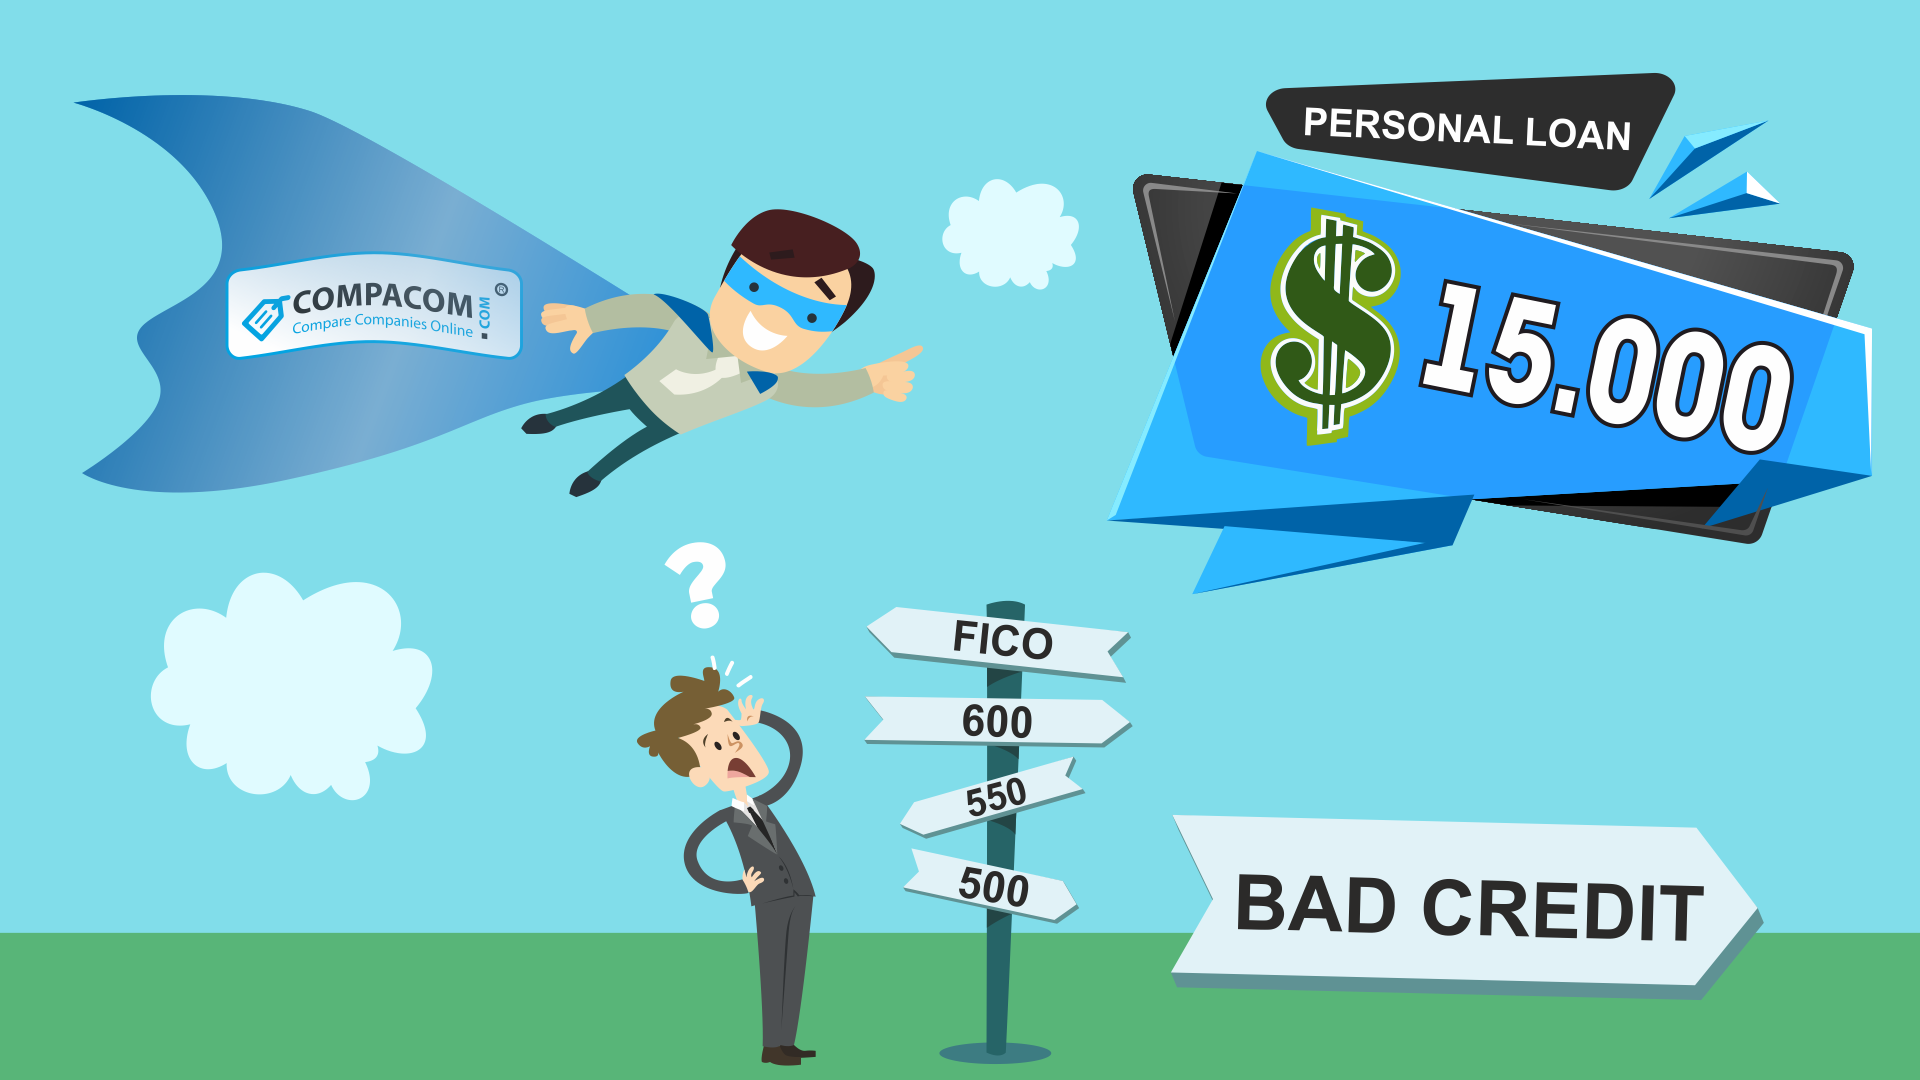 Personal Loan Credit Score 550 >> Bad Credit Which Is Less Than 620 Fico Score Doesn T Stop